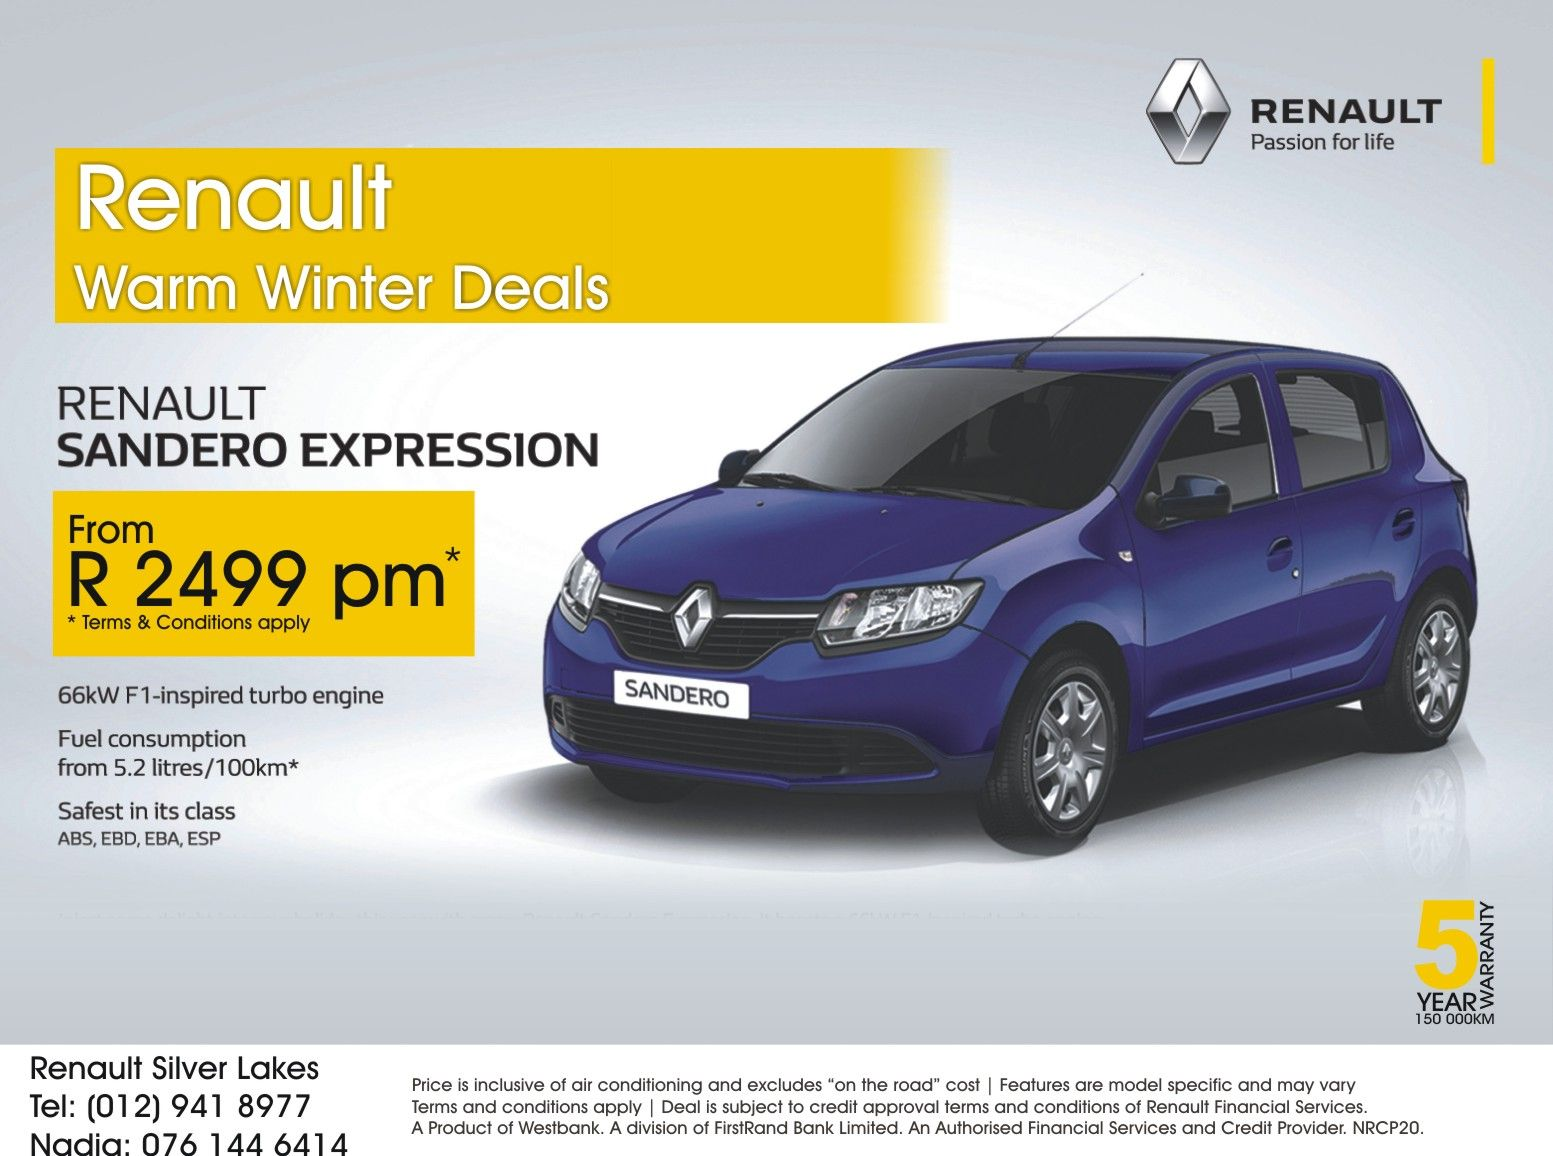 Renault Warm Winter Deals Renault Sandero Expression From R2499 00 Pm Safest In Its Class 5 Year Warrant Winter Deals Renault Passion For Life